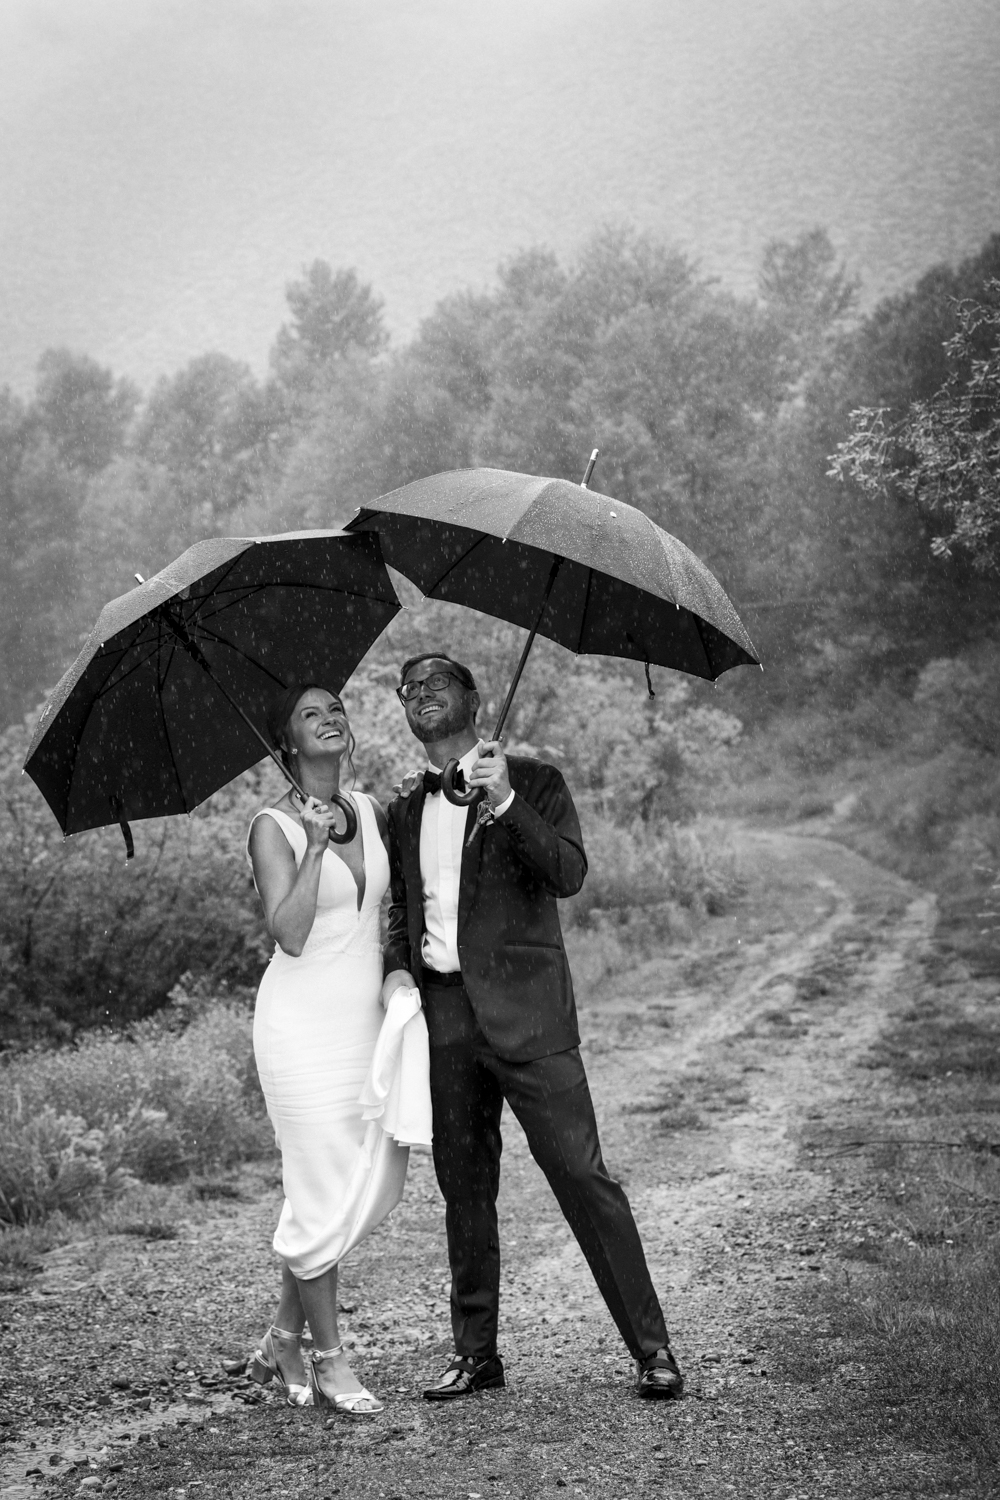 trailcreek_rainy_wedding-001.jpg